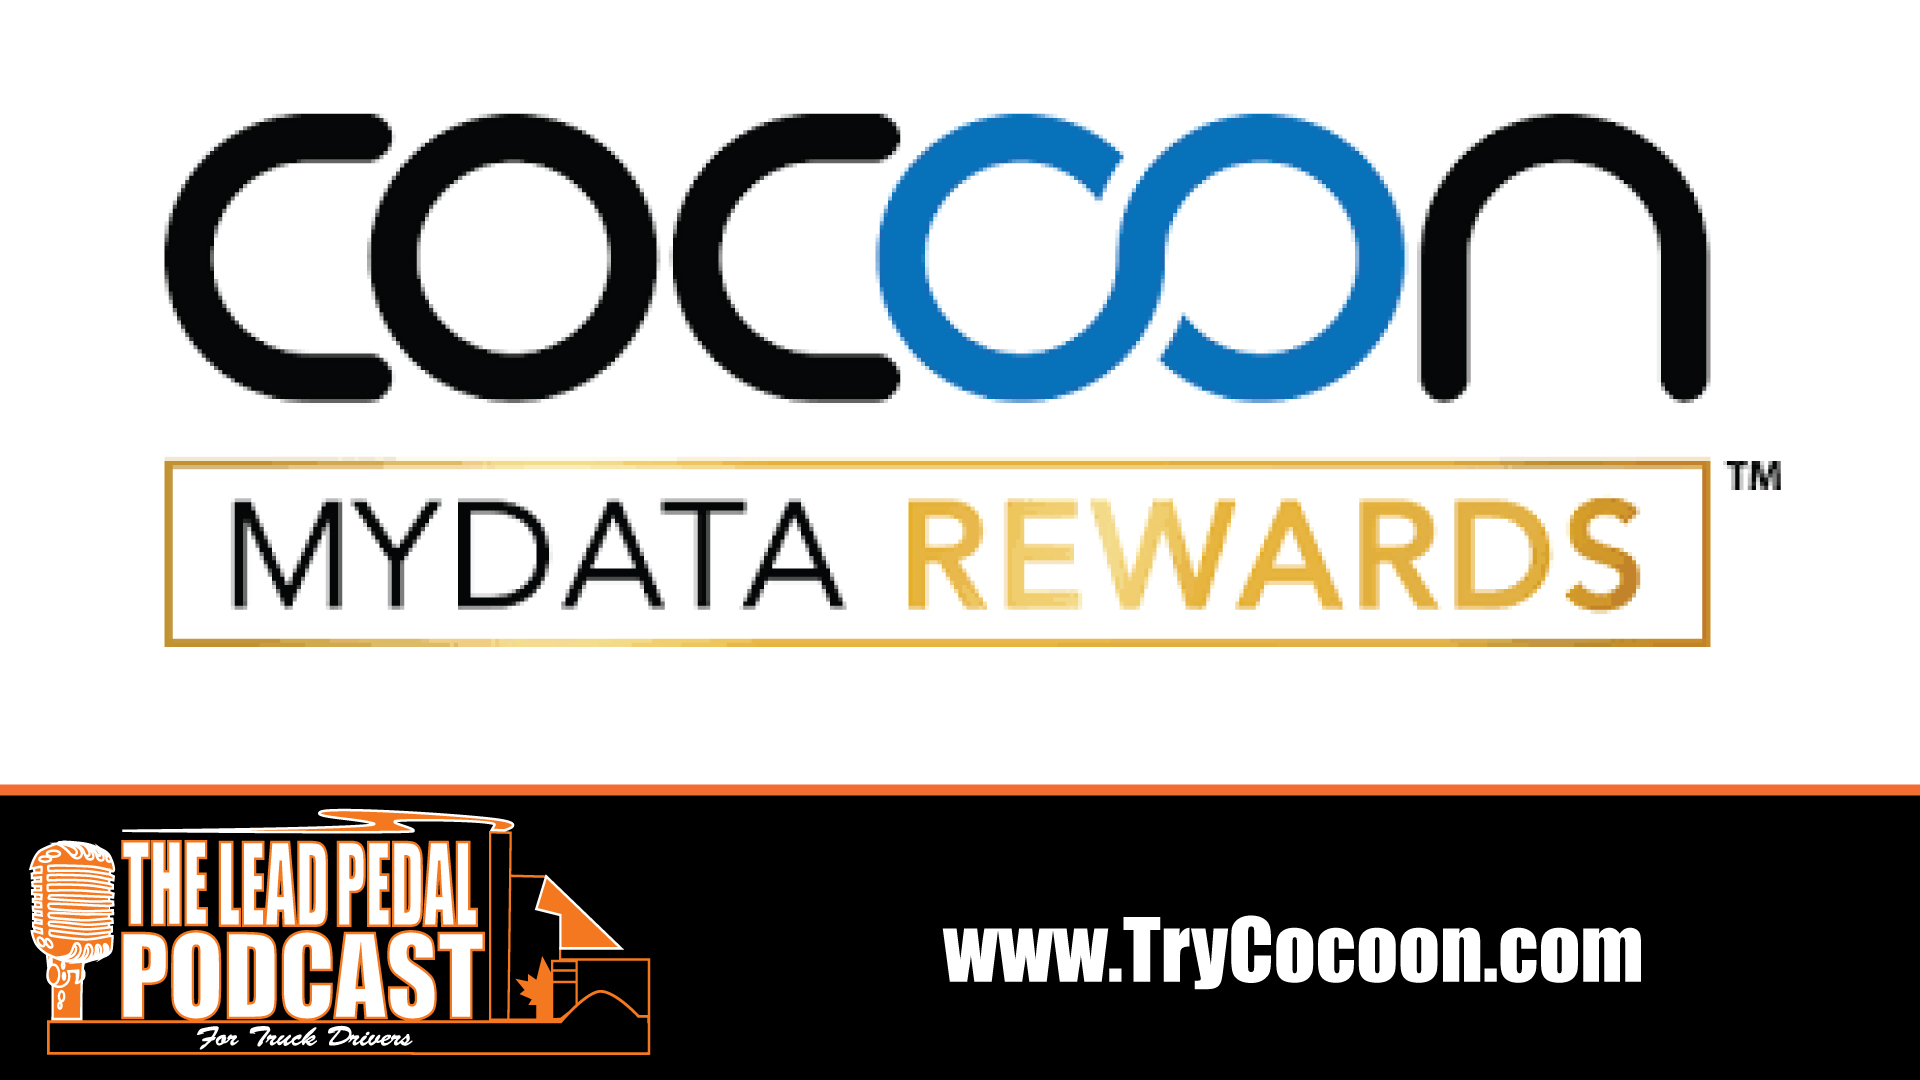 Try Cocoon